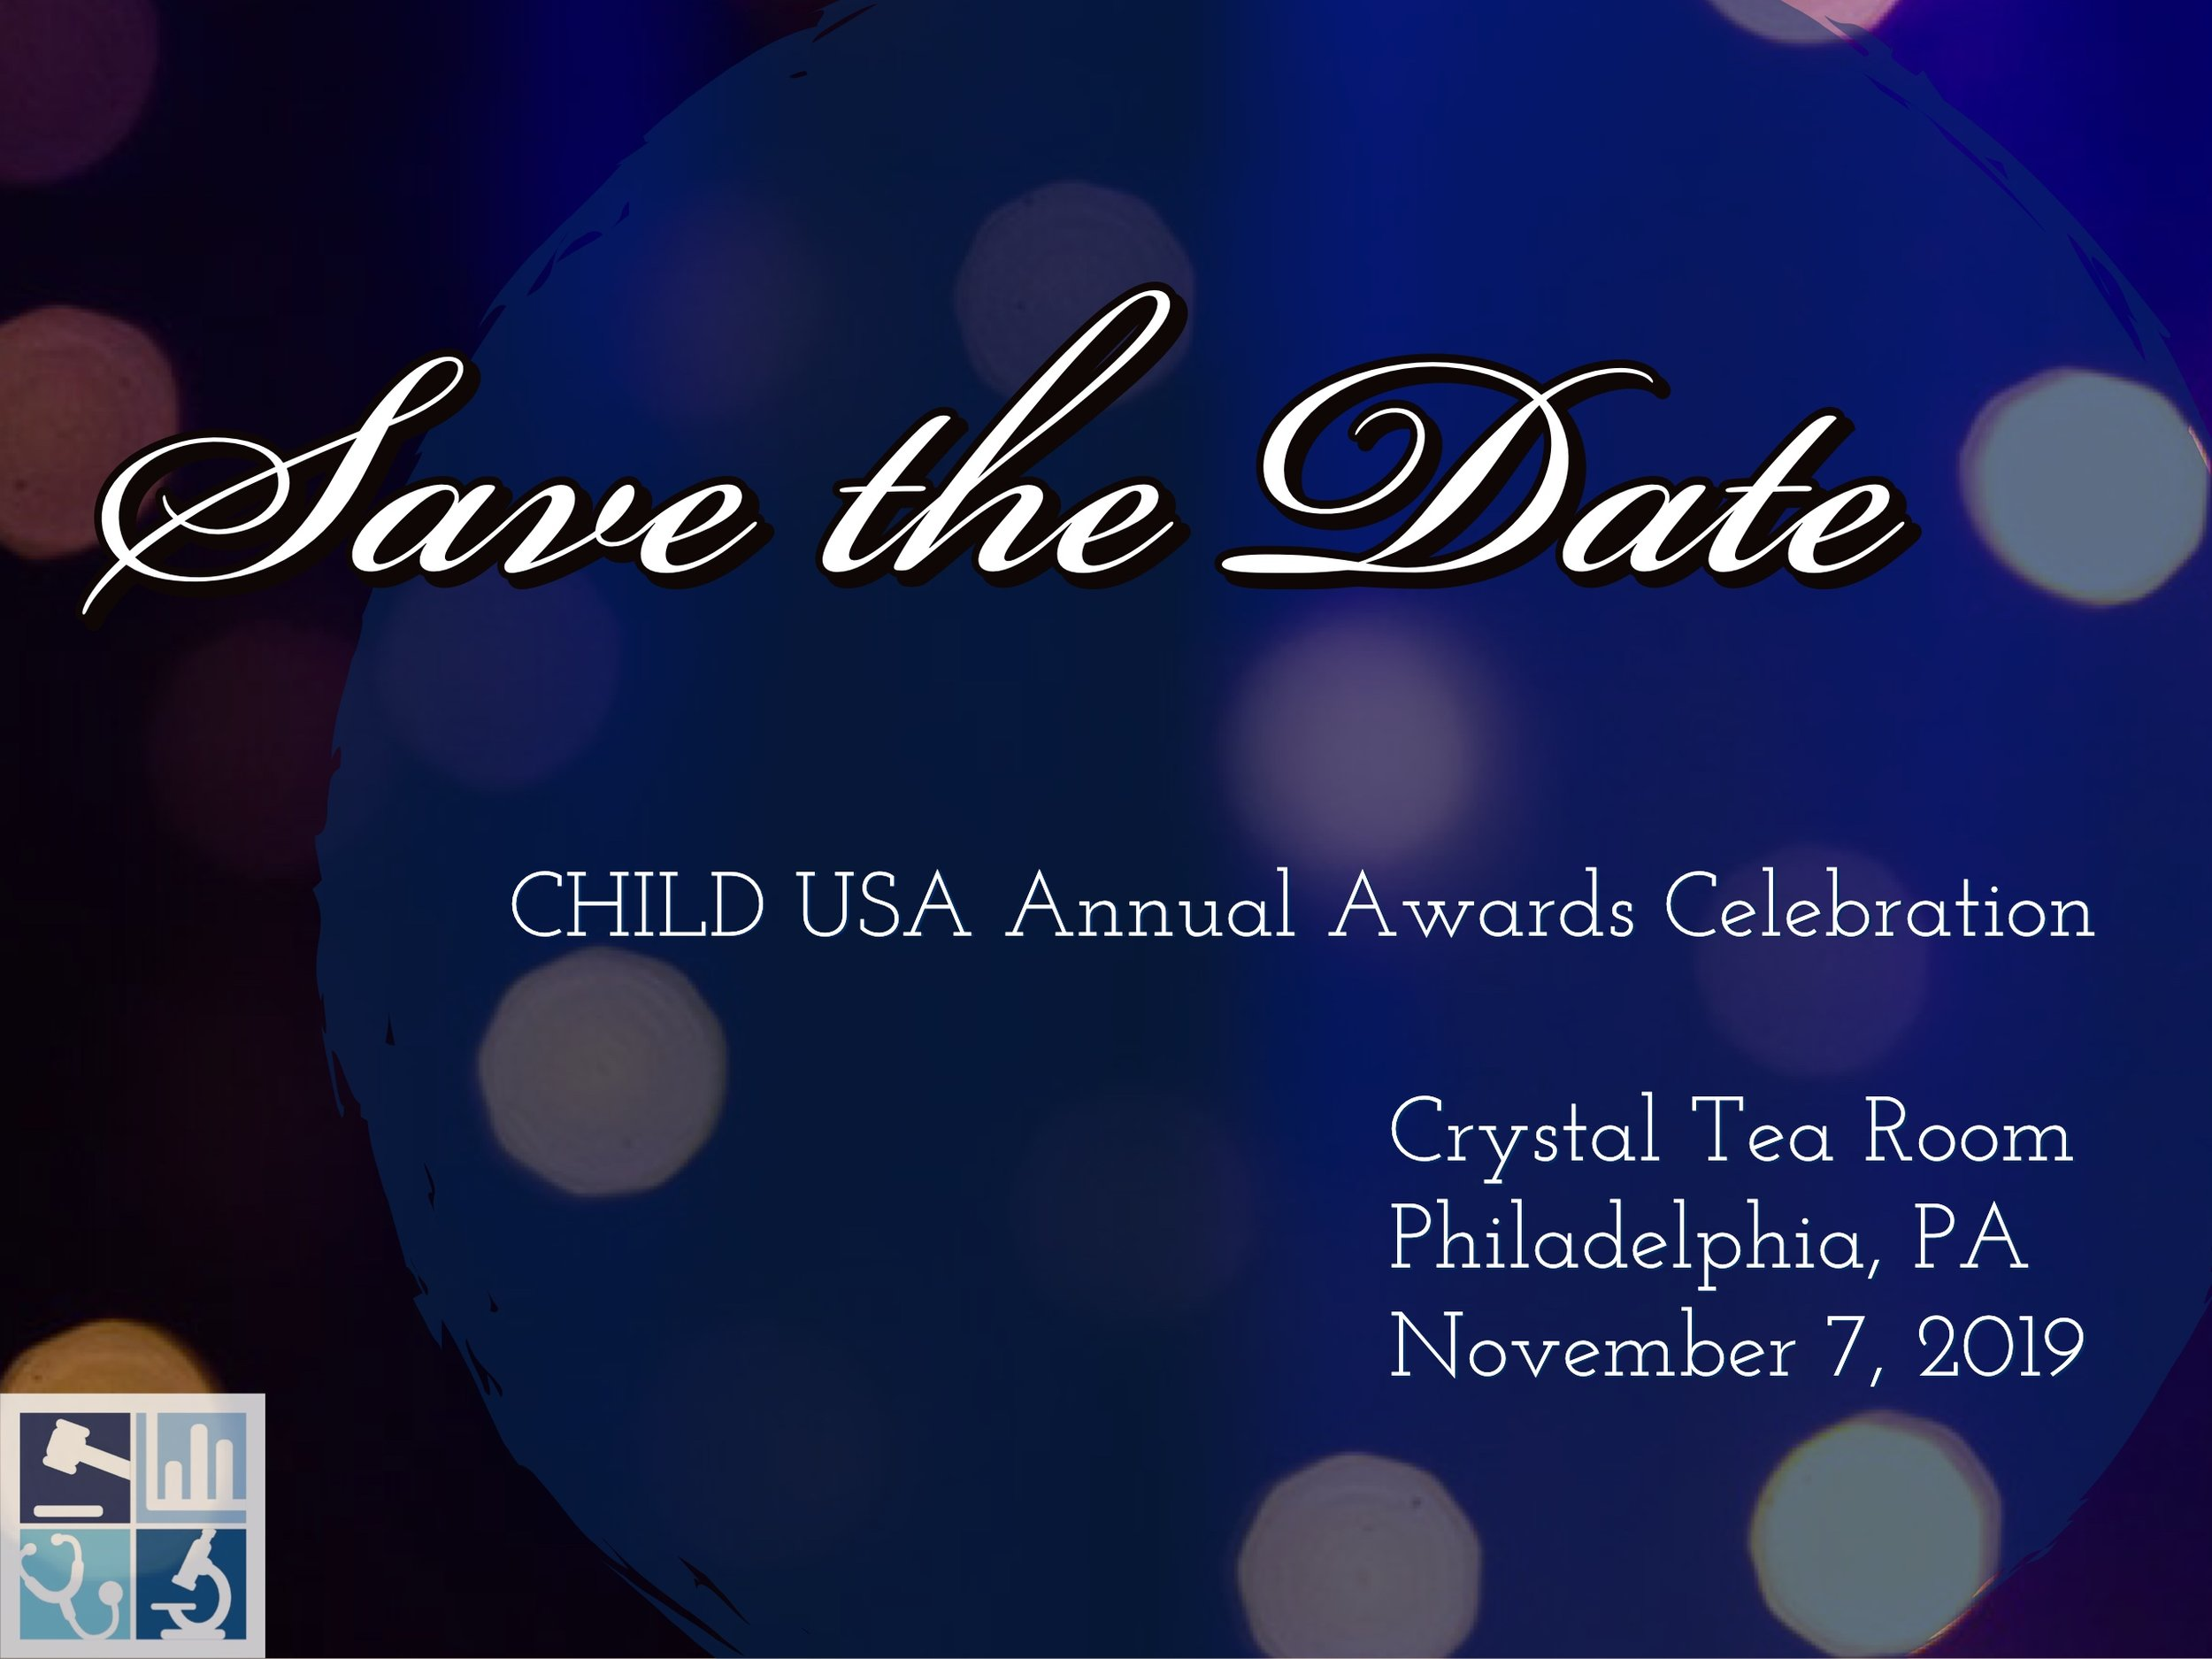 Annual Awards Celebration - When: November 7, 2019Where: Crystal Tea Room Wanamaker Building | 100 E Penn Square #9B | Philadelphia, PA 19107CHILD USA's Annual Awards Celebration will be taking place on November 7, 2019. We hope to see you there!